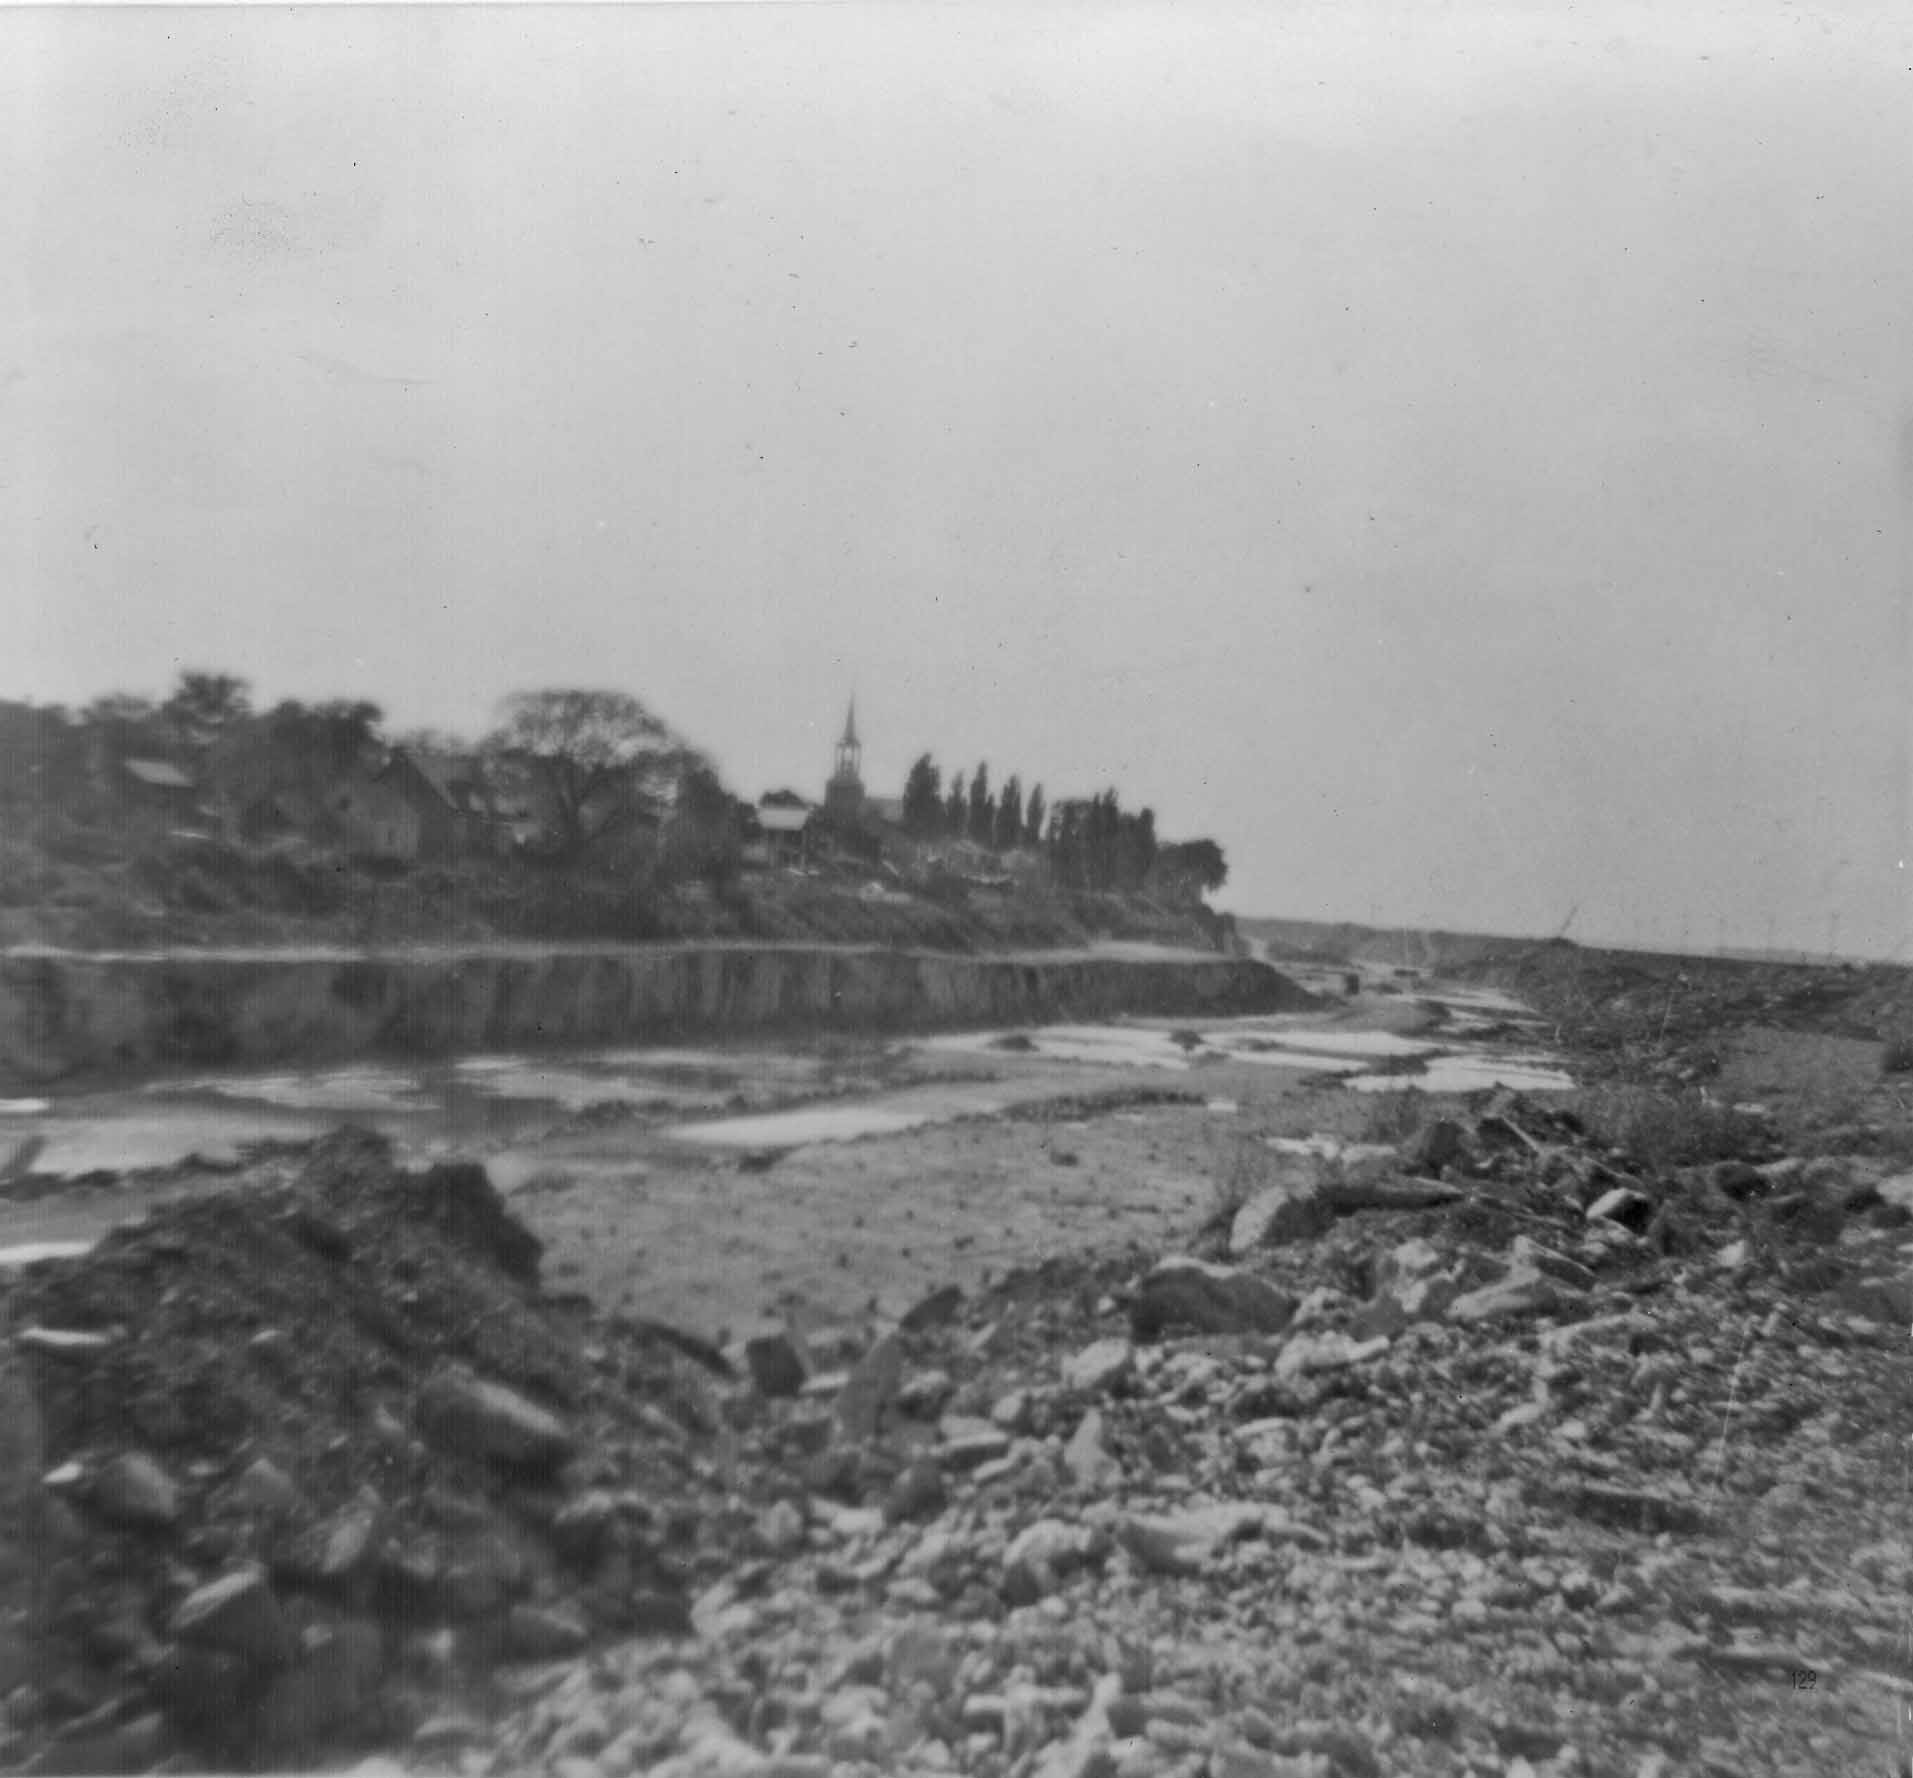 Construction of the St. Lawrence Seaway took place between 1954 and 1959. (The Kahnawake Photo Archive/ Kanien'keháka Onkwawén:na Raotitióhkwa Language and Cultural Center)